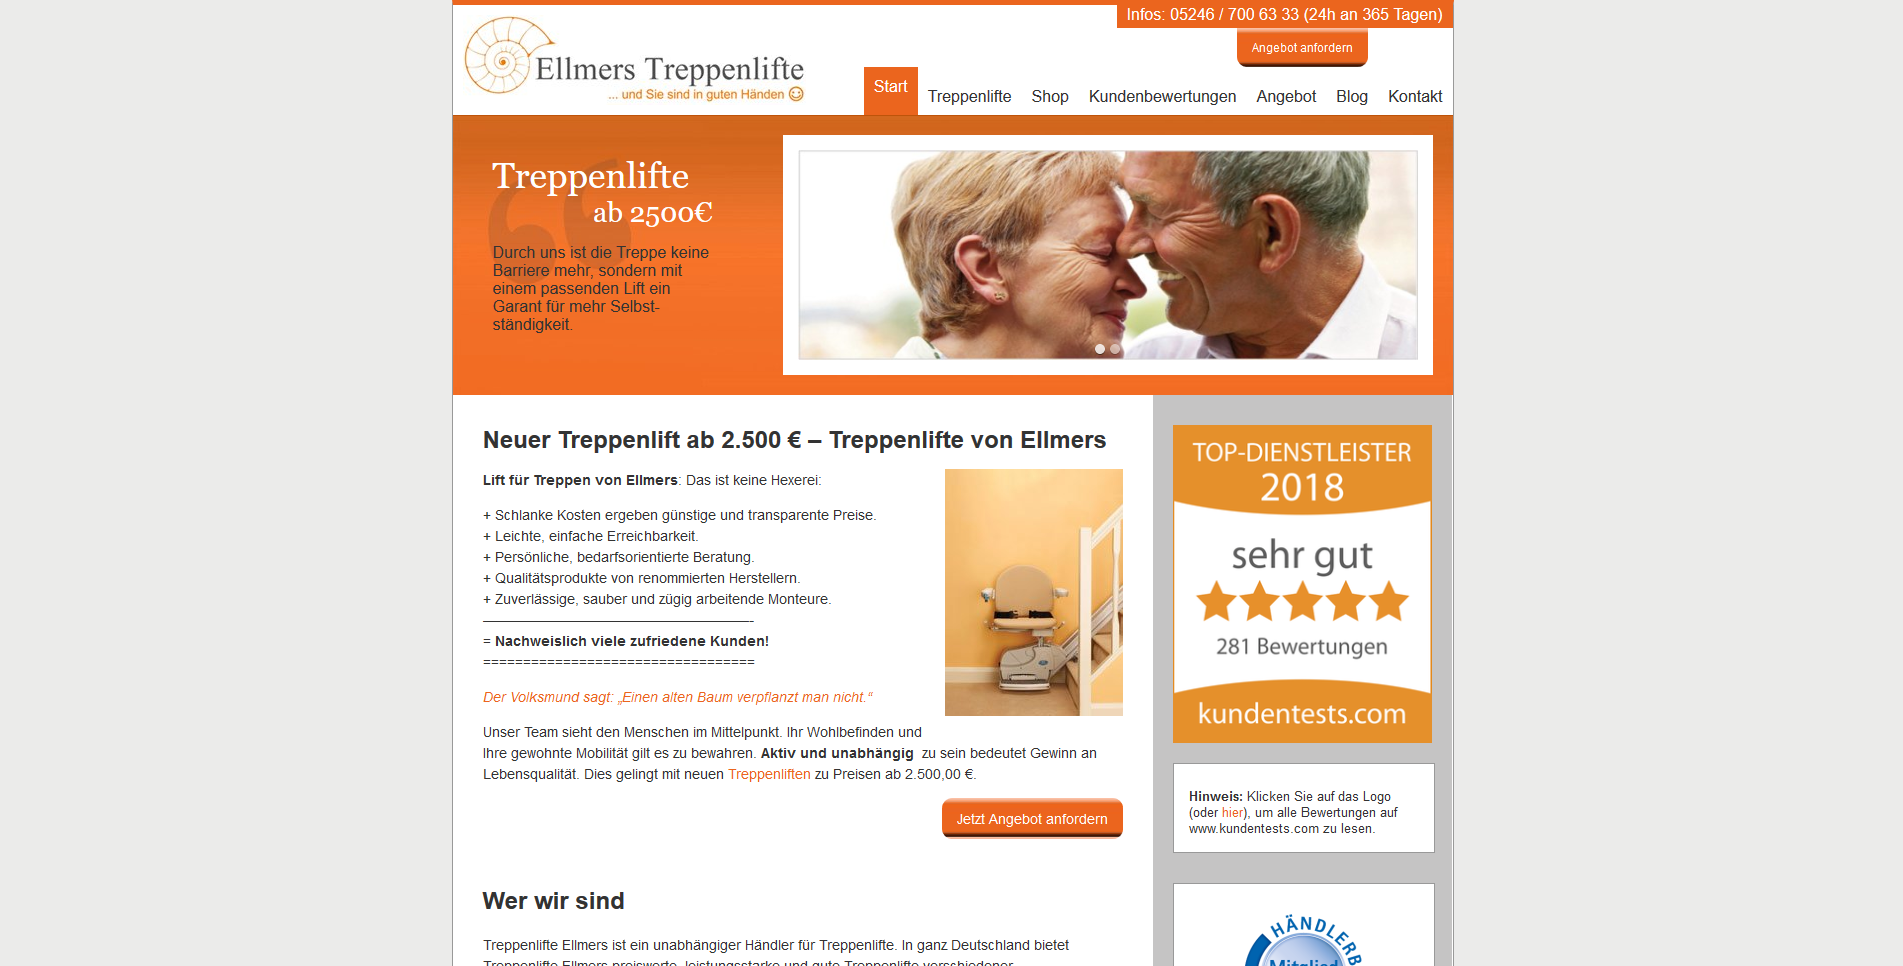 Ellmers Treppenlifte